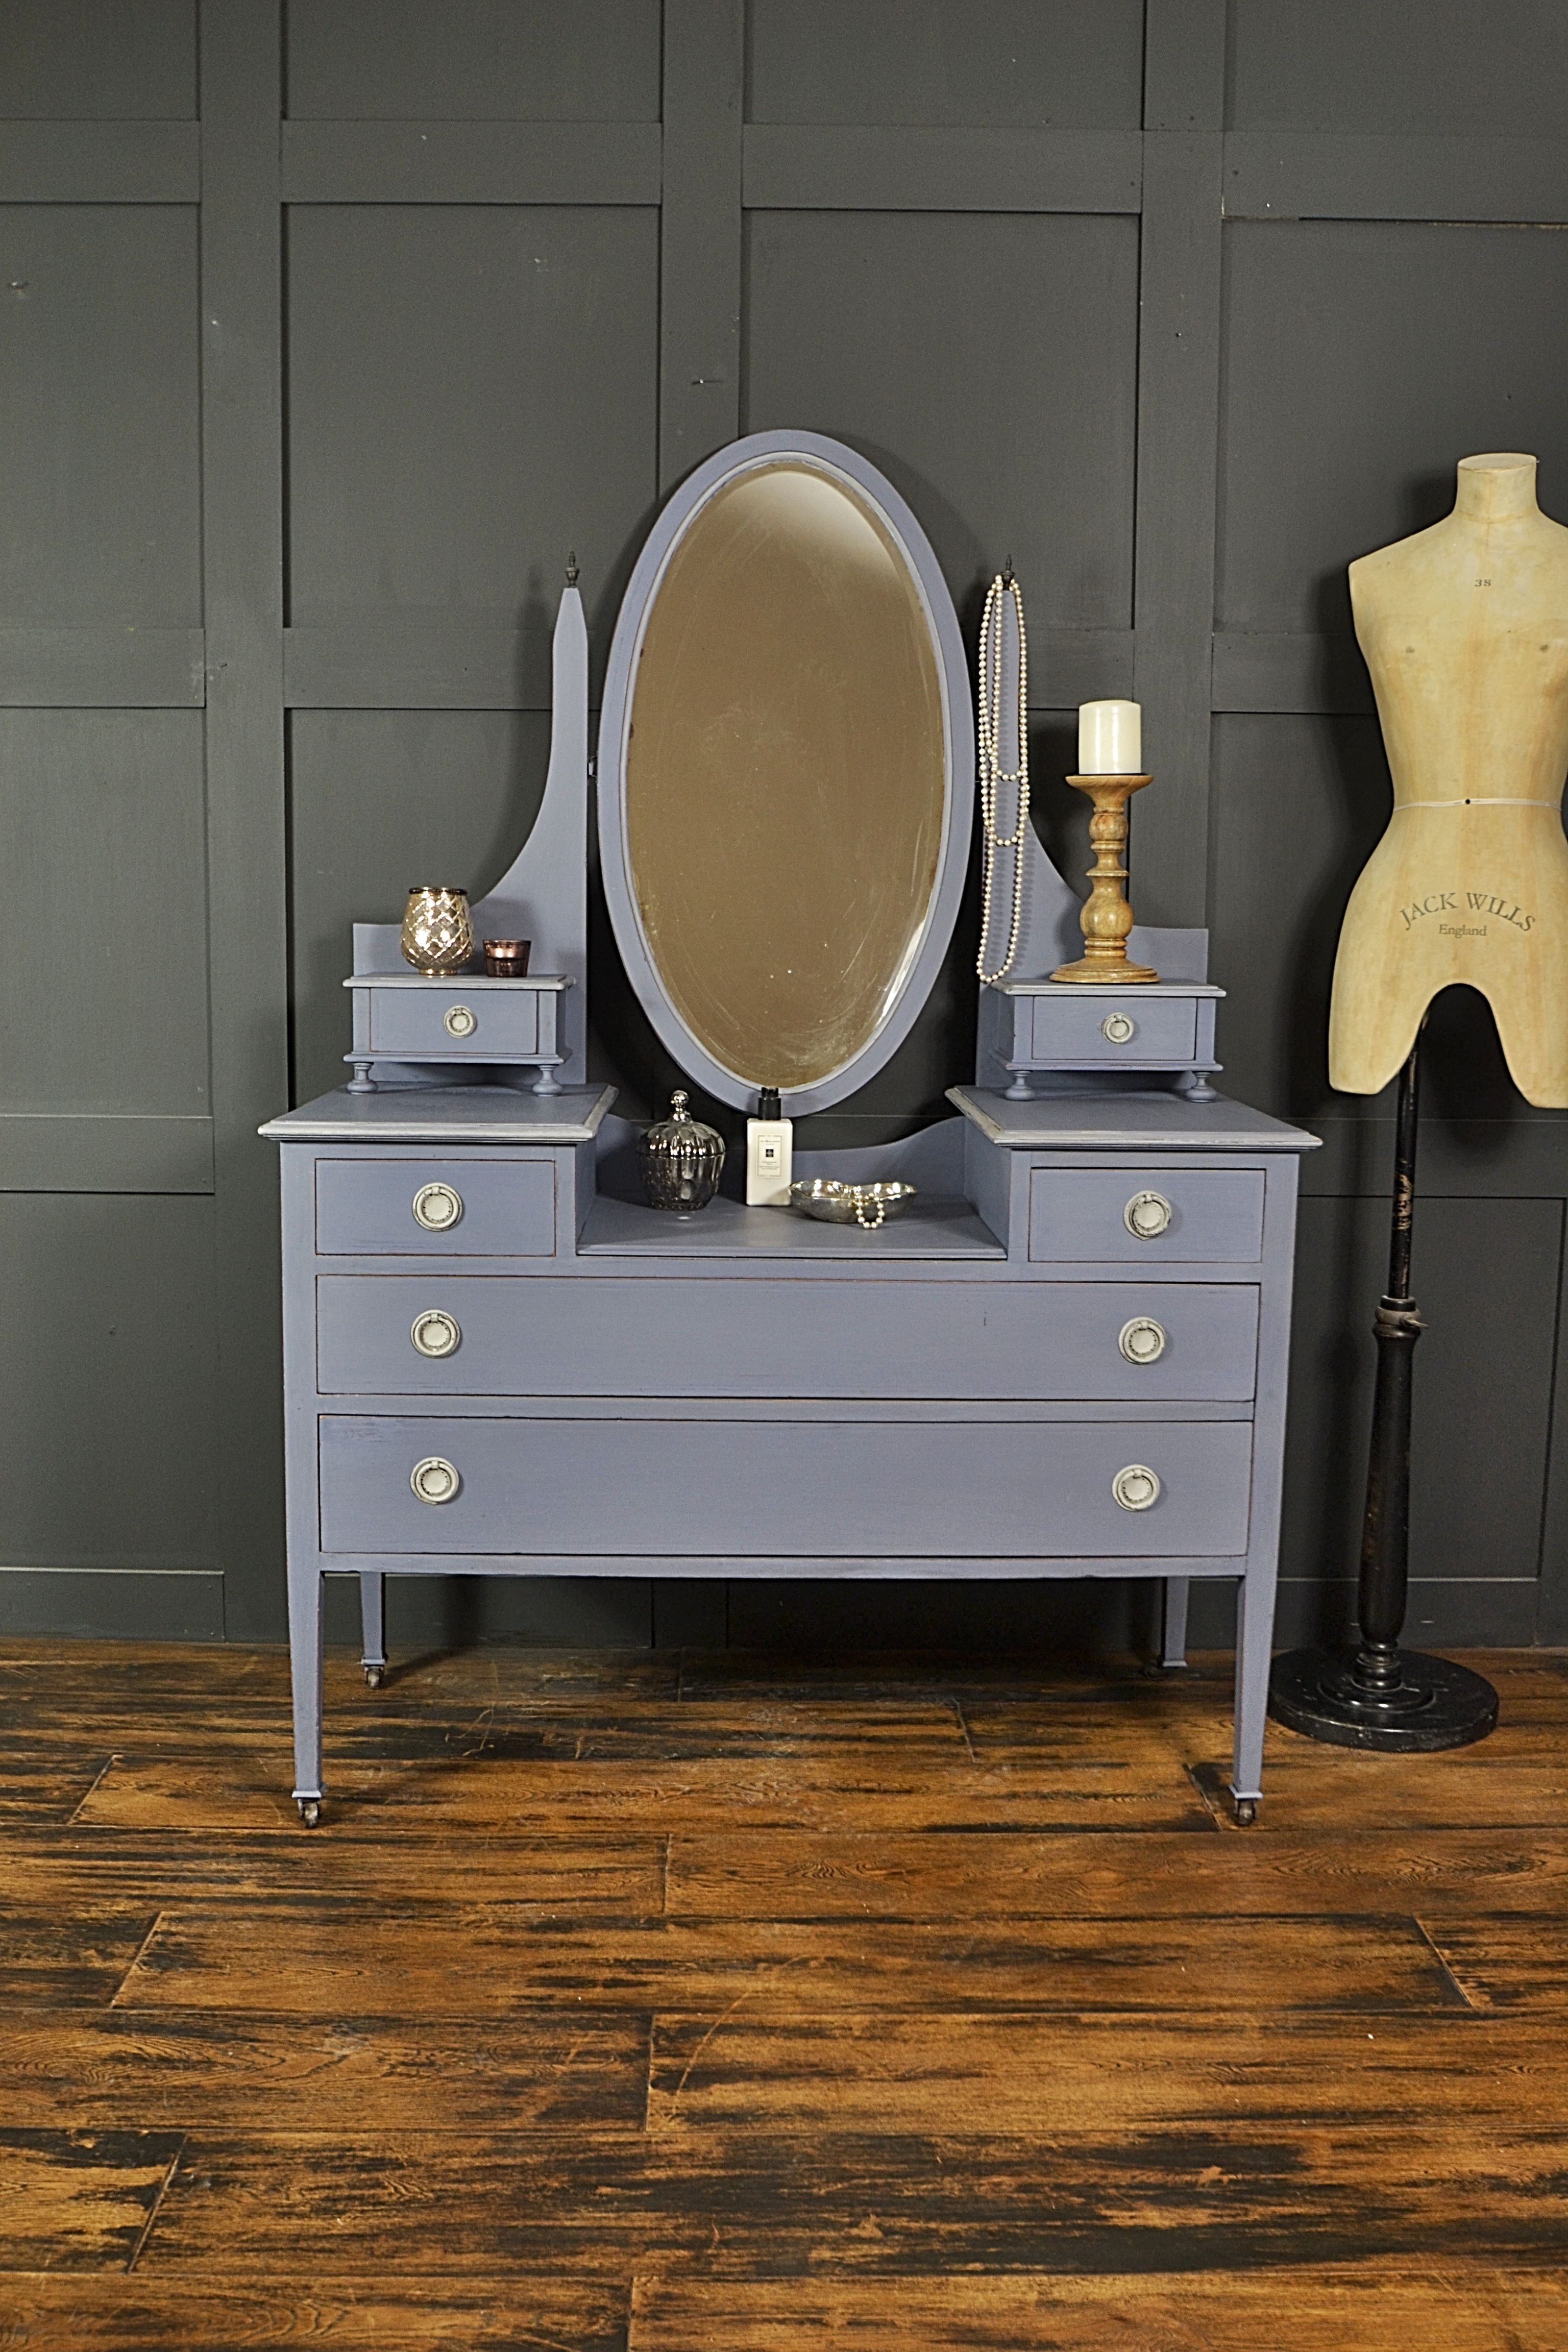 This edwardian dressing table on castors has a large oval mirror and